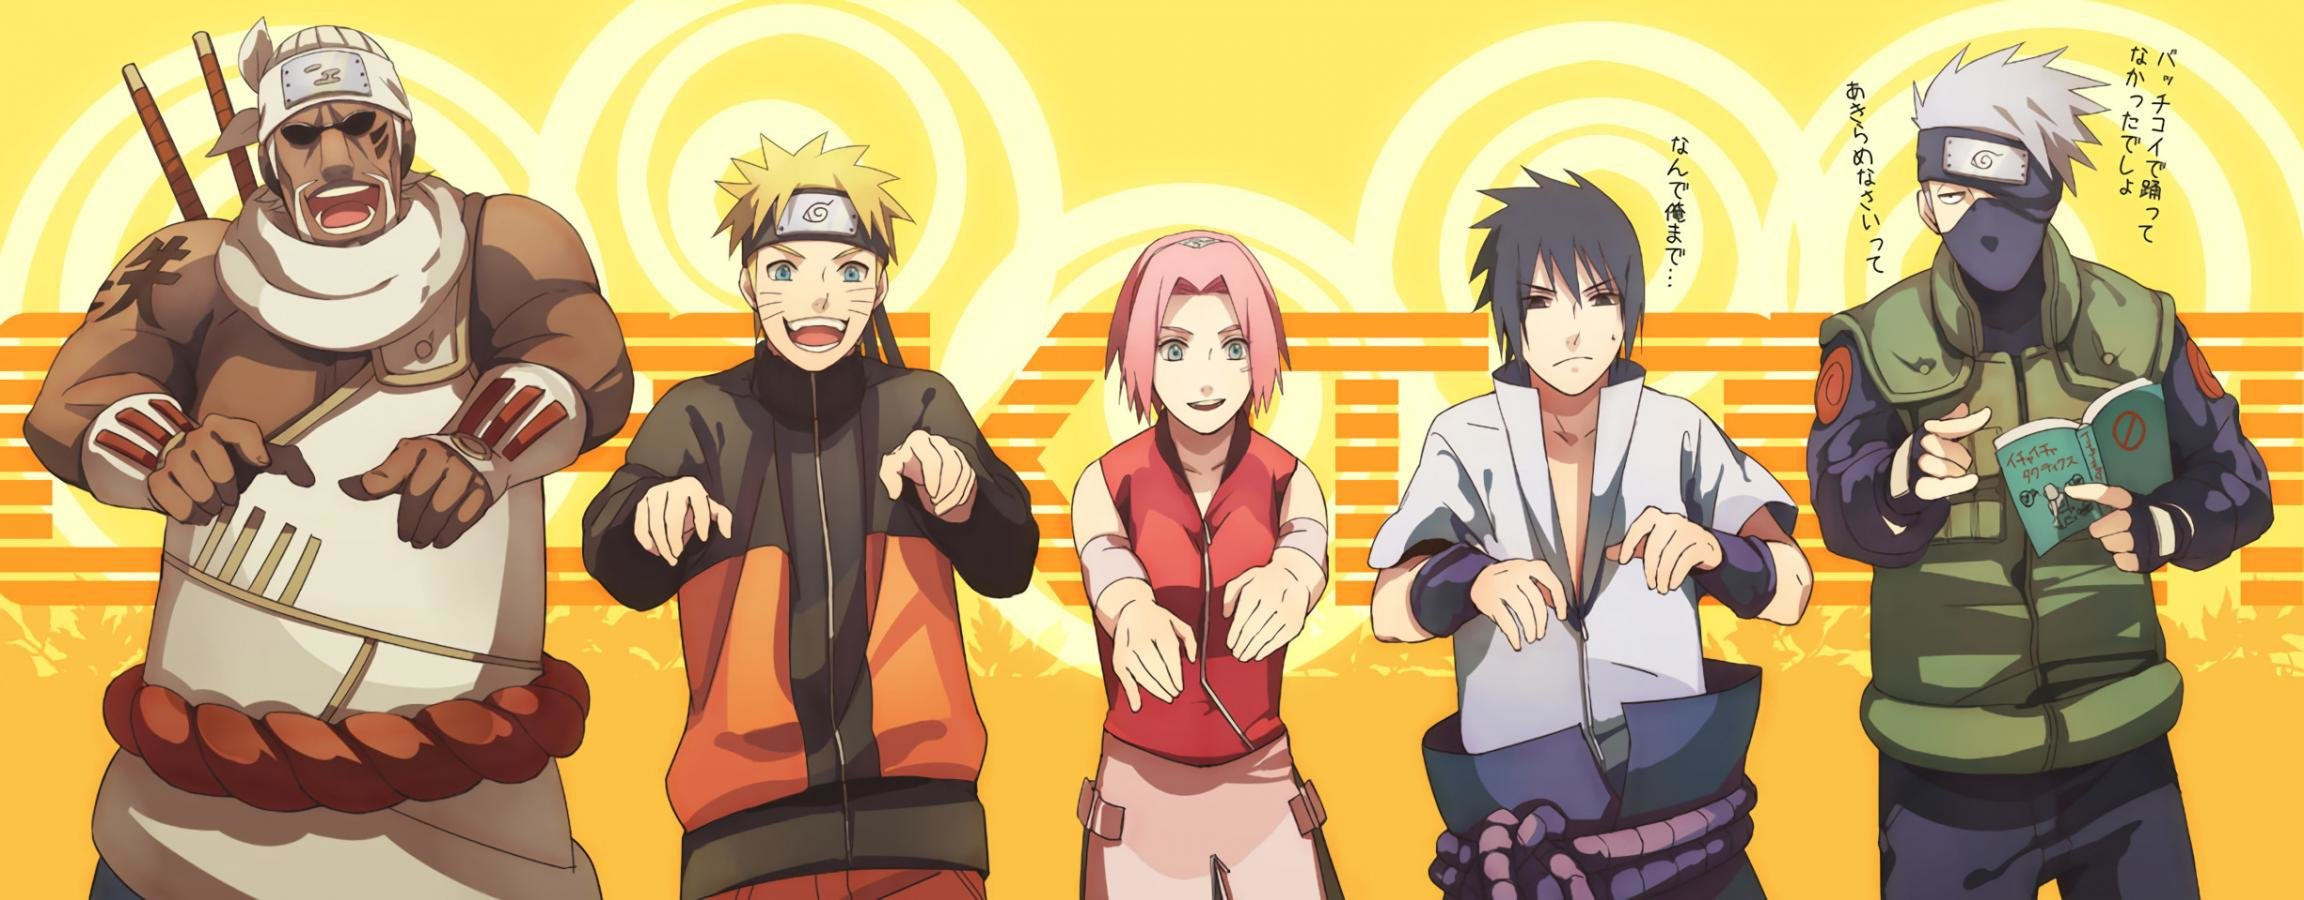 Dual Monitor Naruto Wallpapers Hd Backgrounds